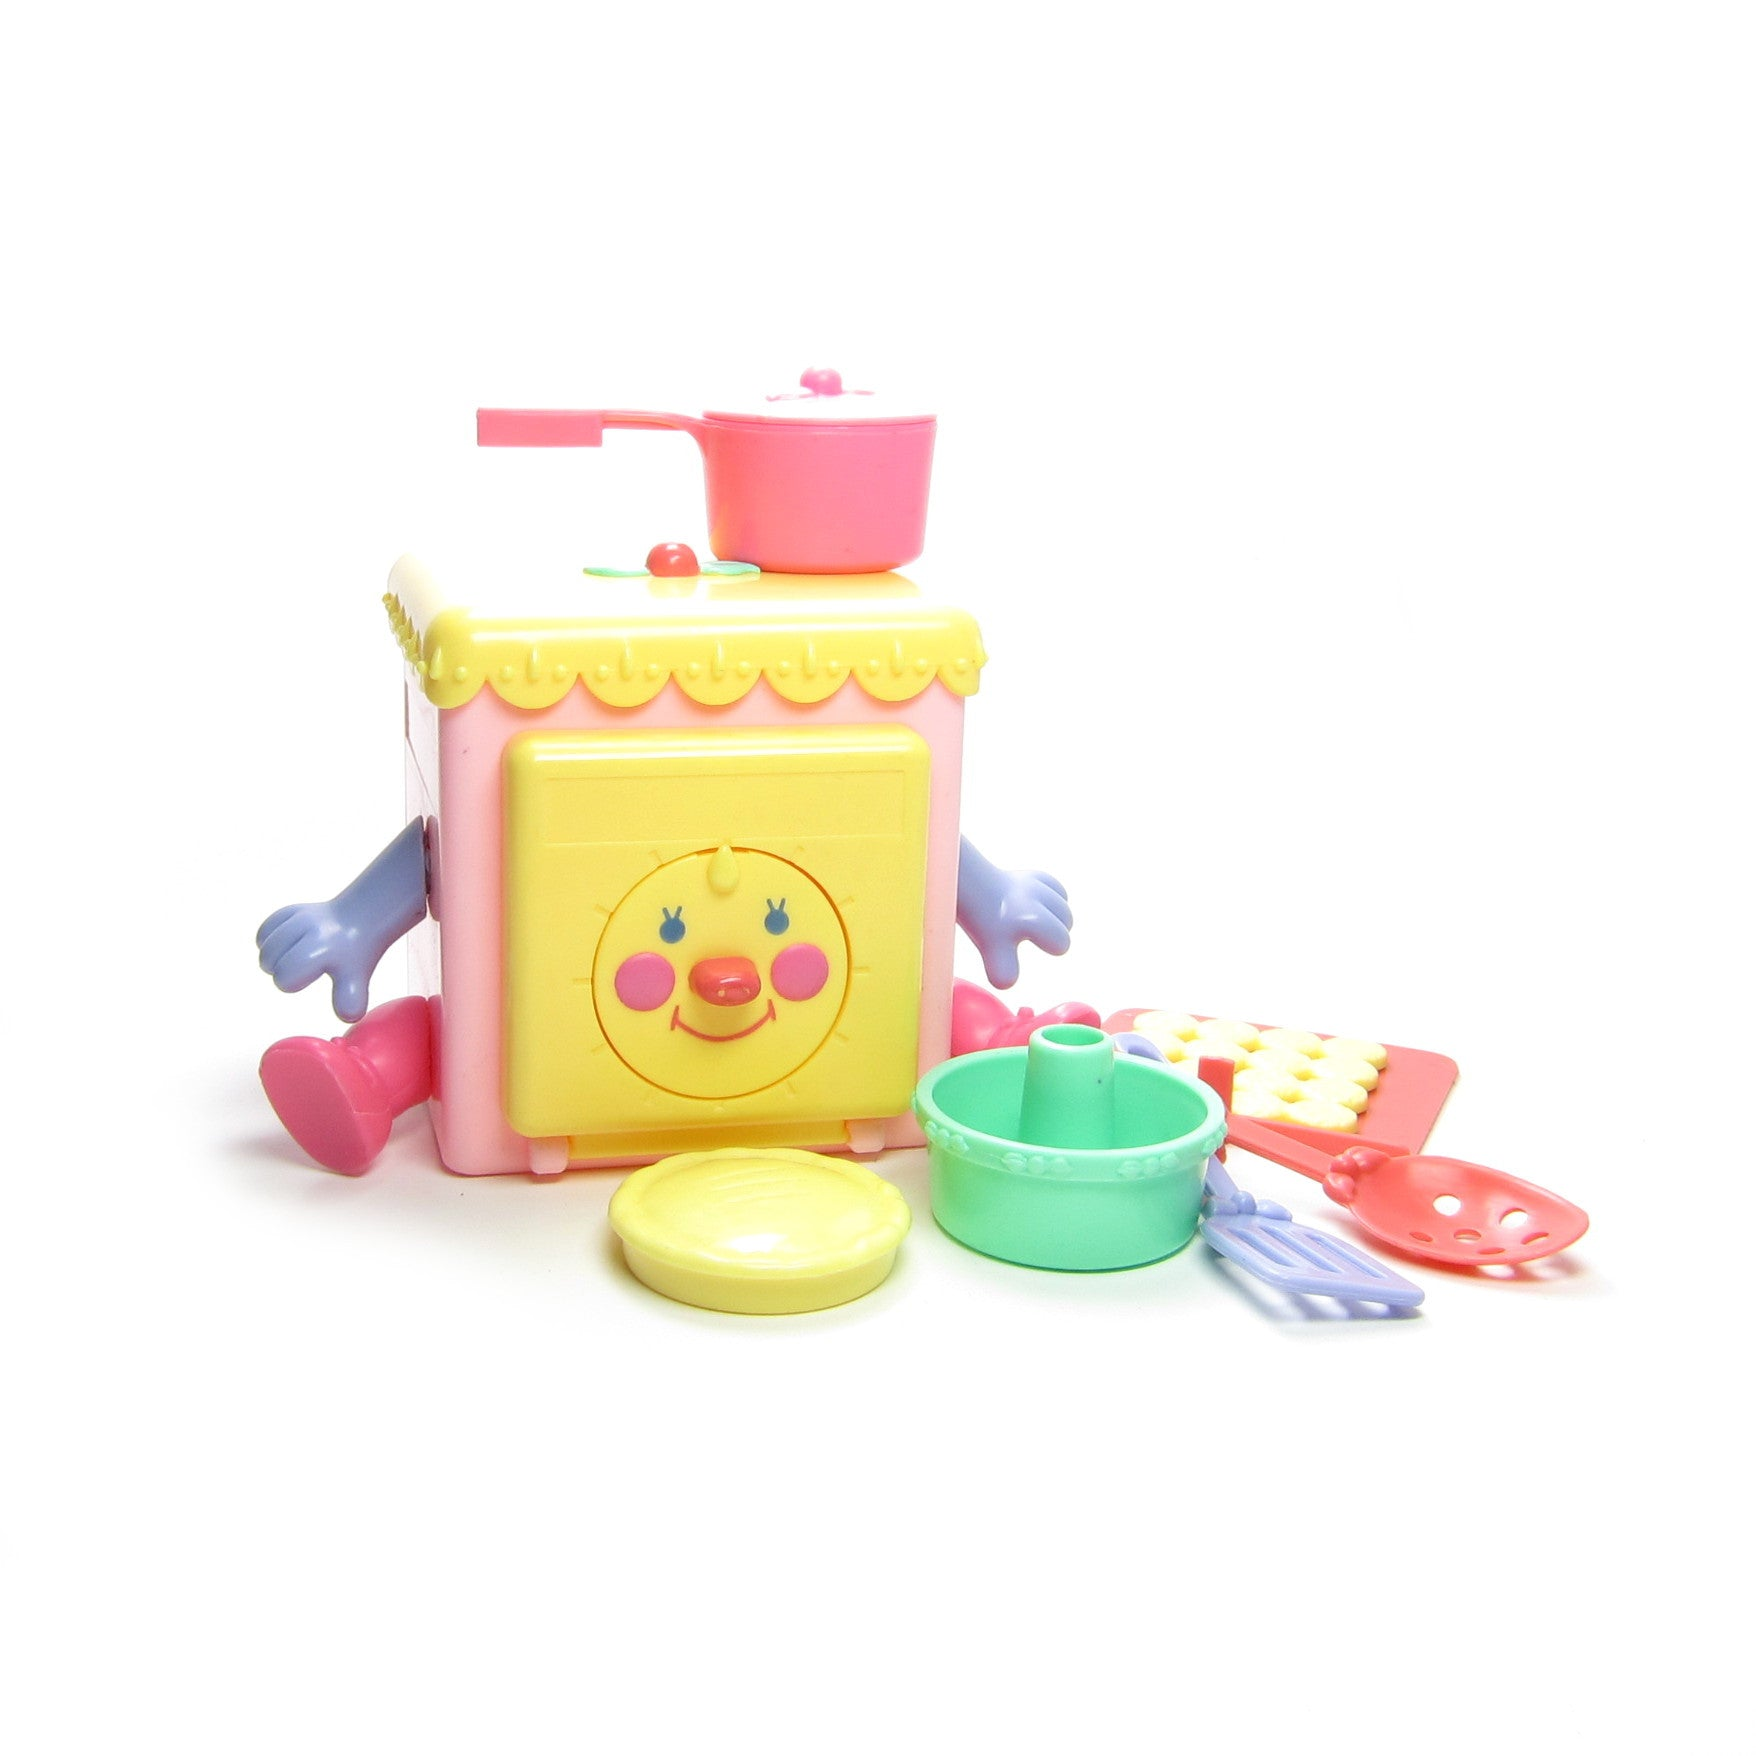 Time & Bake Stove Playset for Cherry Merry Muffin dolls